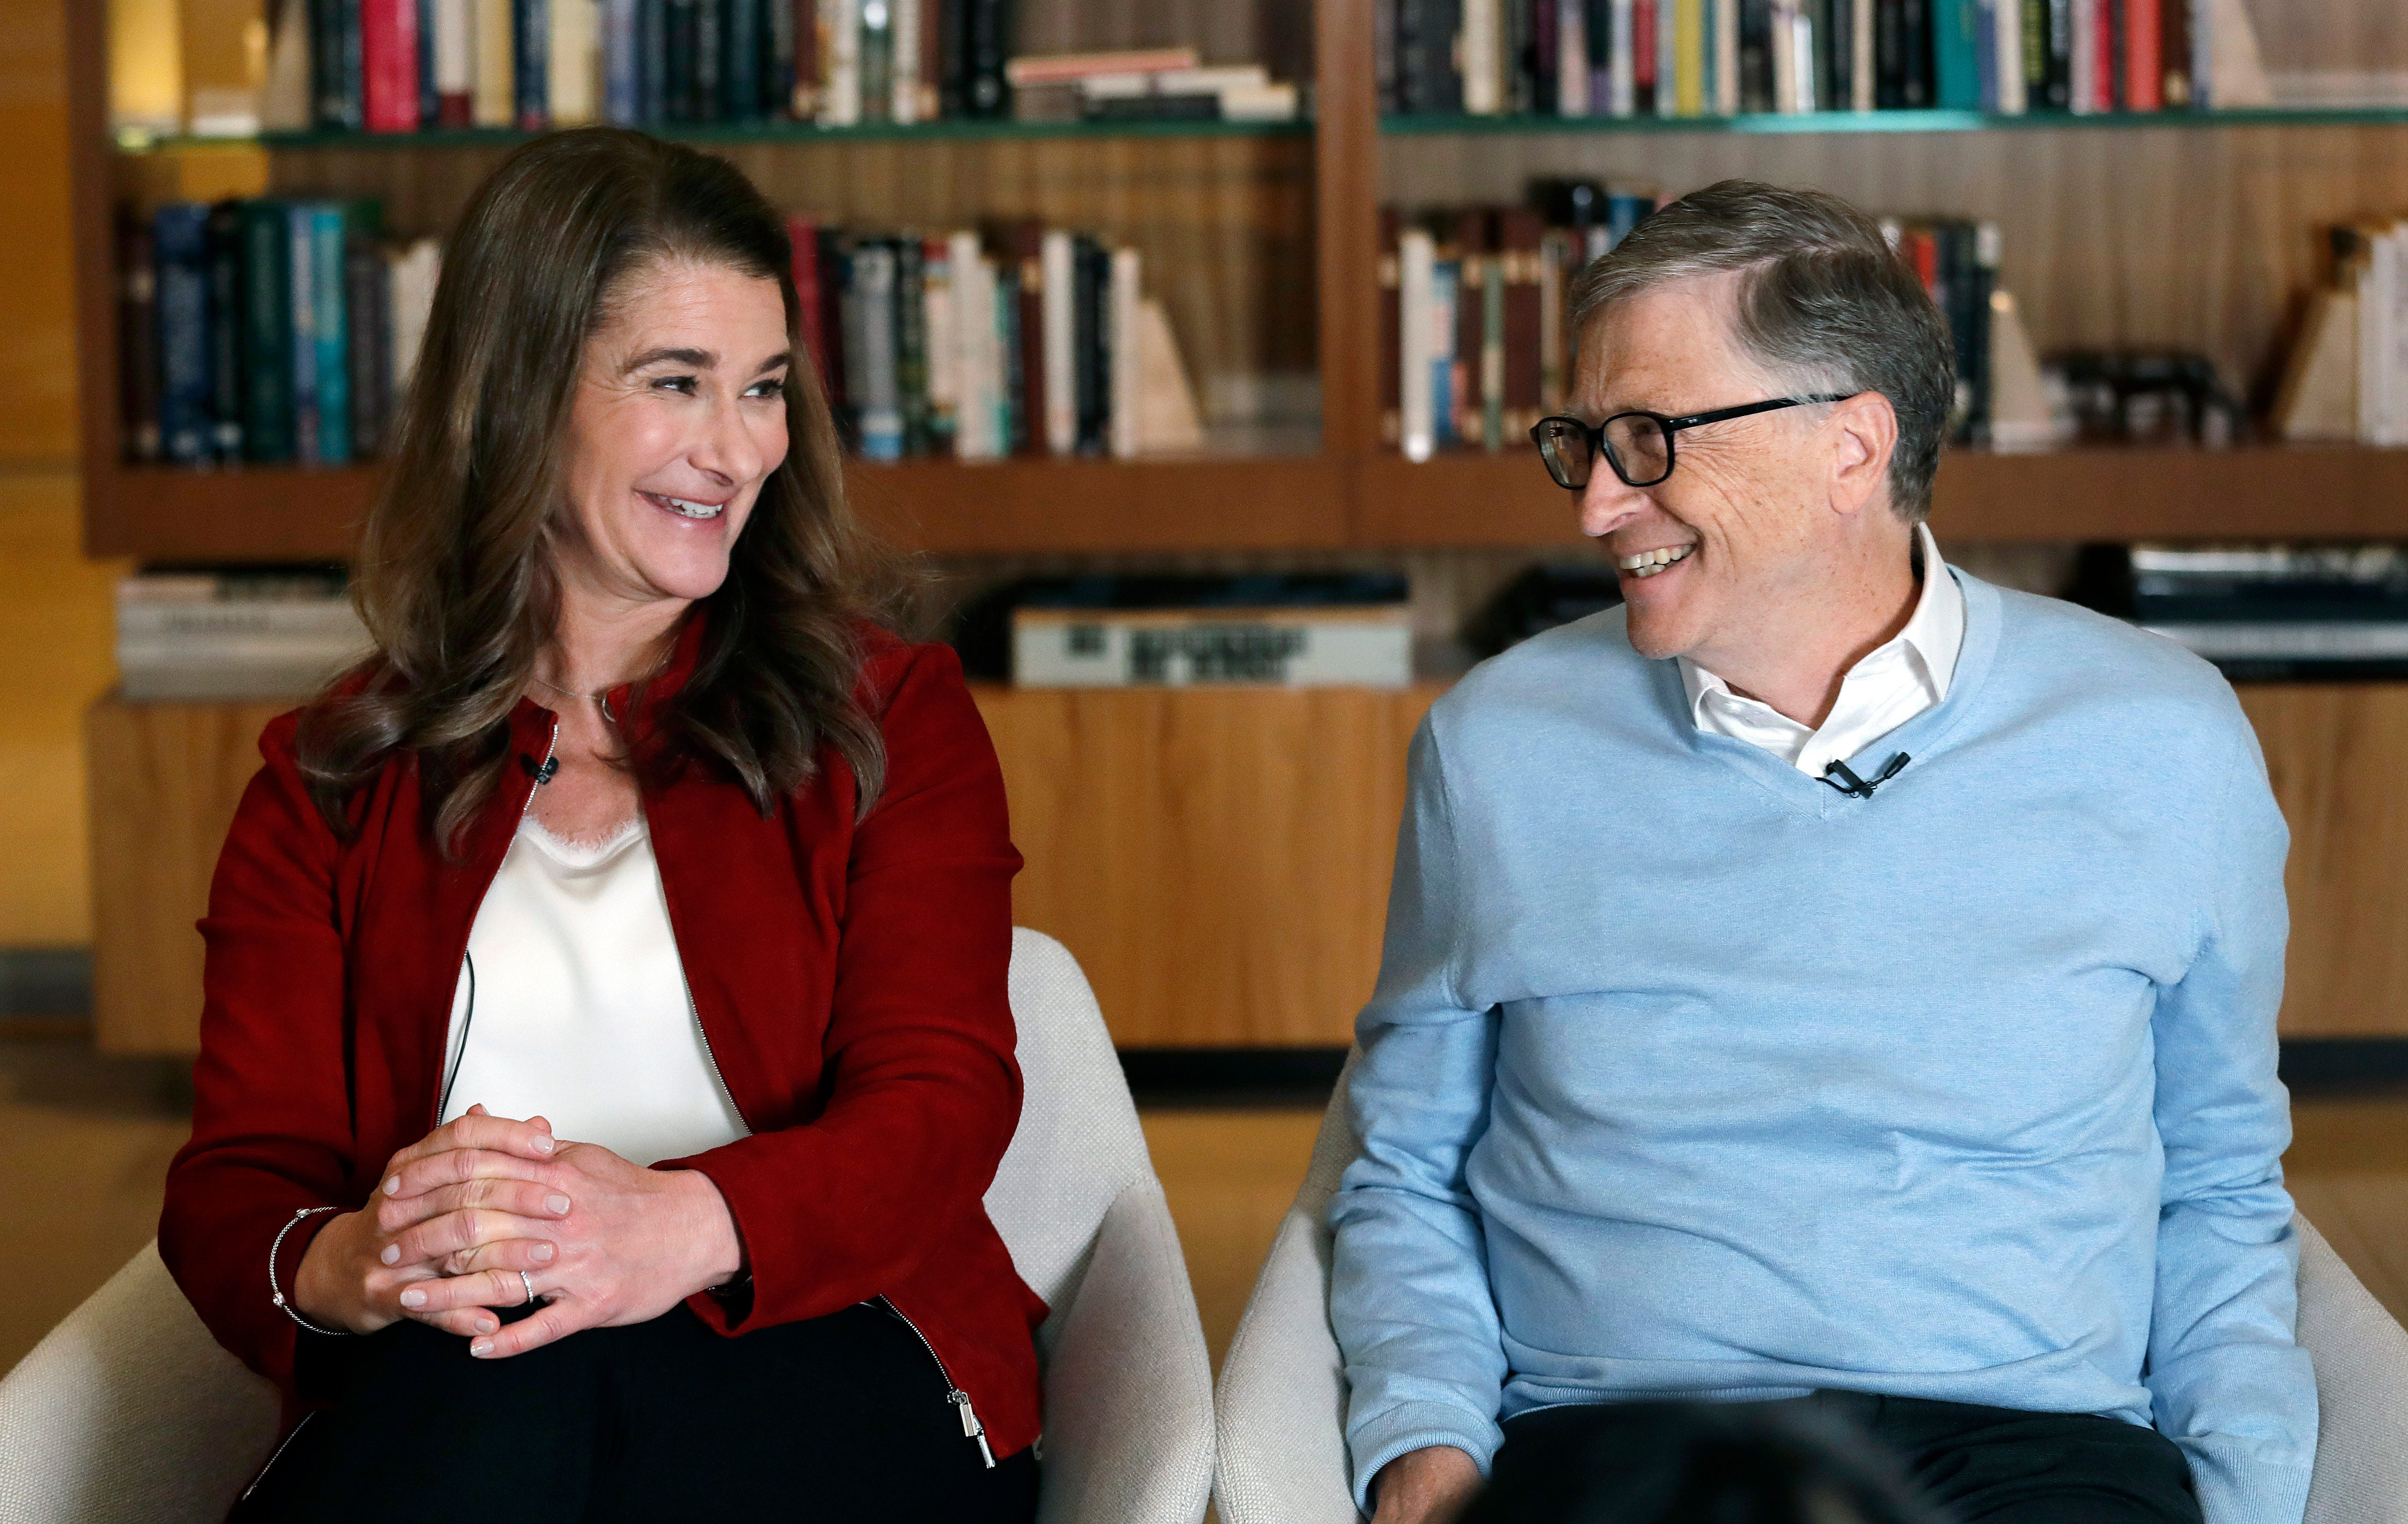 Bill and Melinda Gates  breakup after 27 years has us reeling. Why do we care so much?